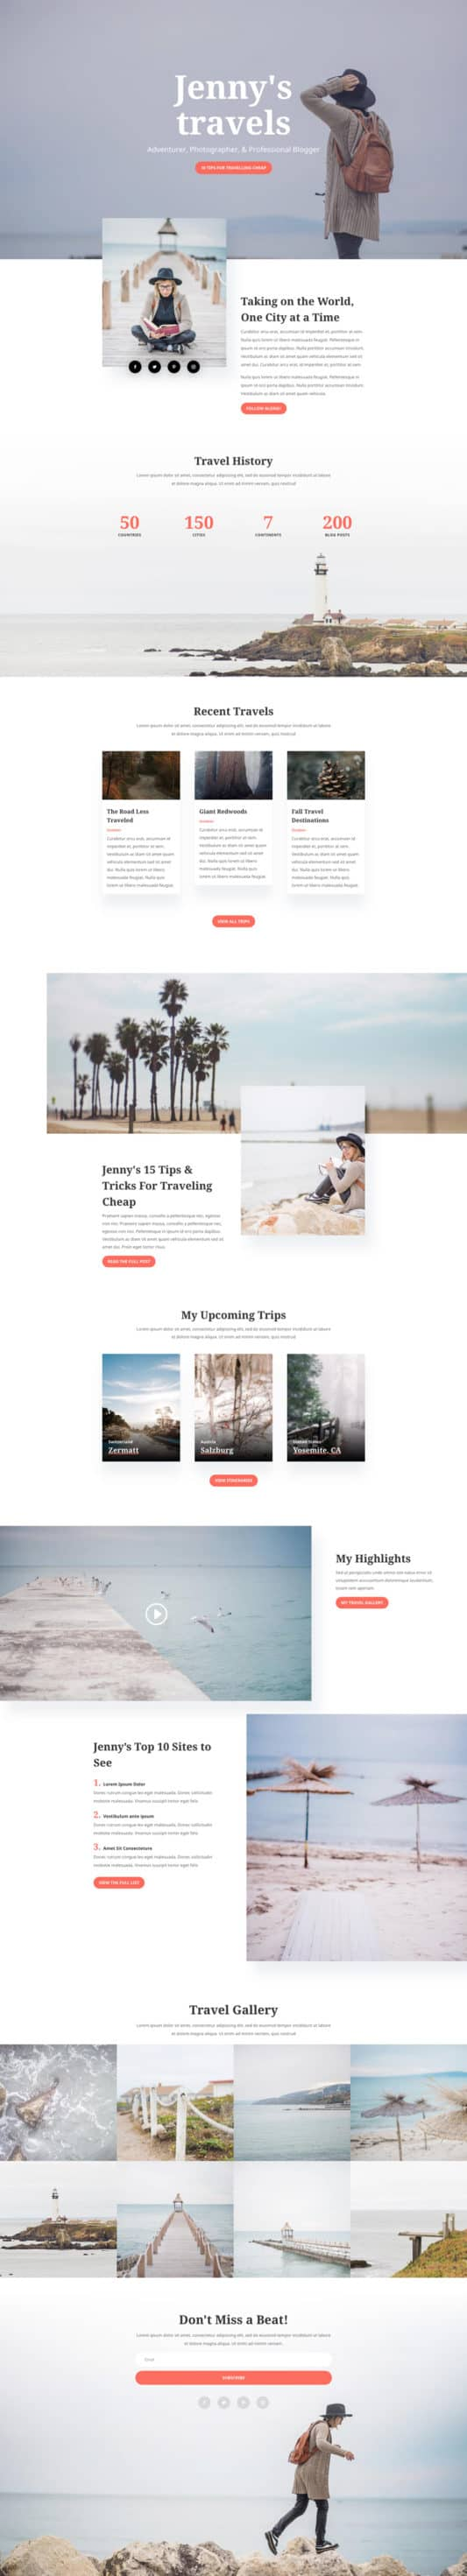 The Travel Blog Page Style: Homepage Design 1